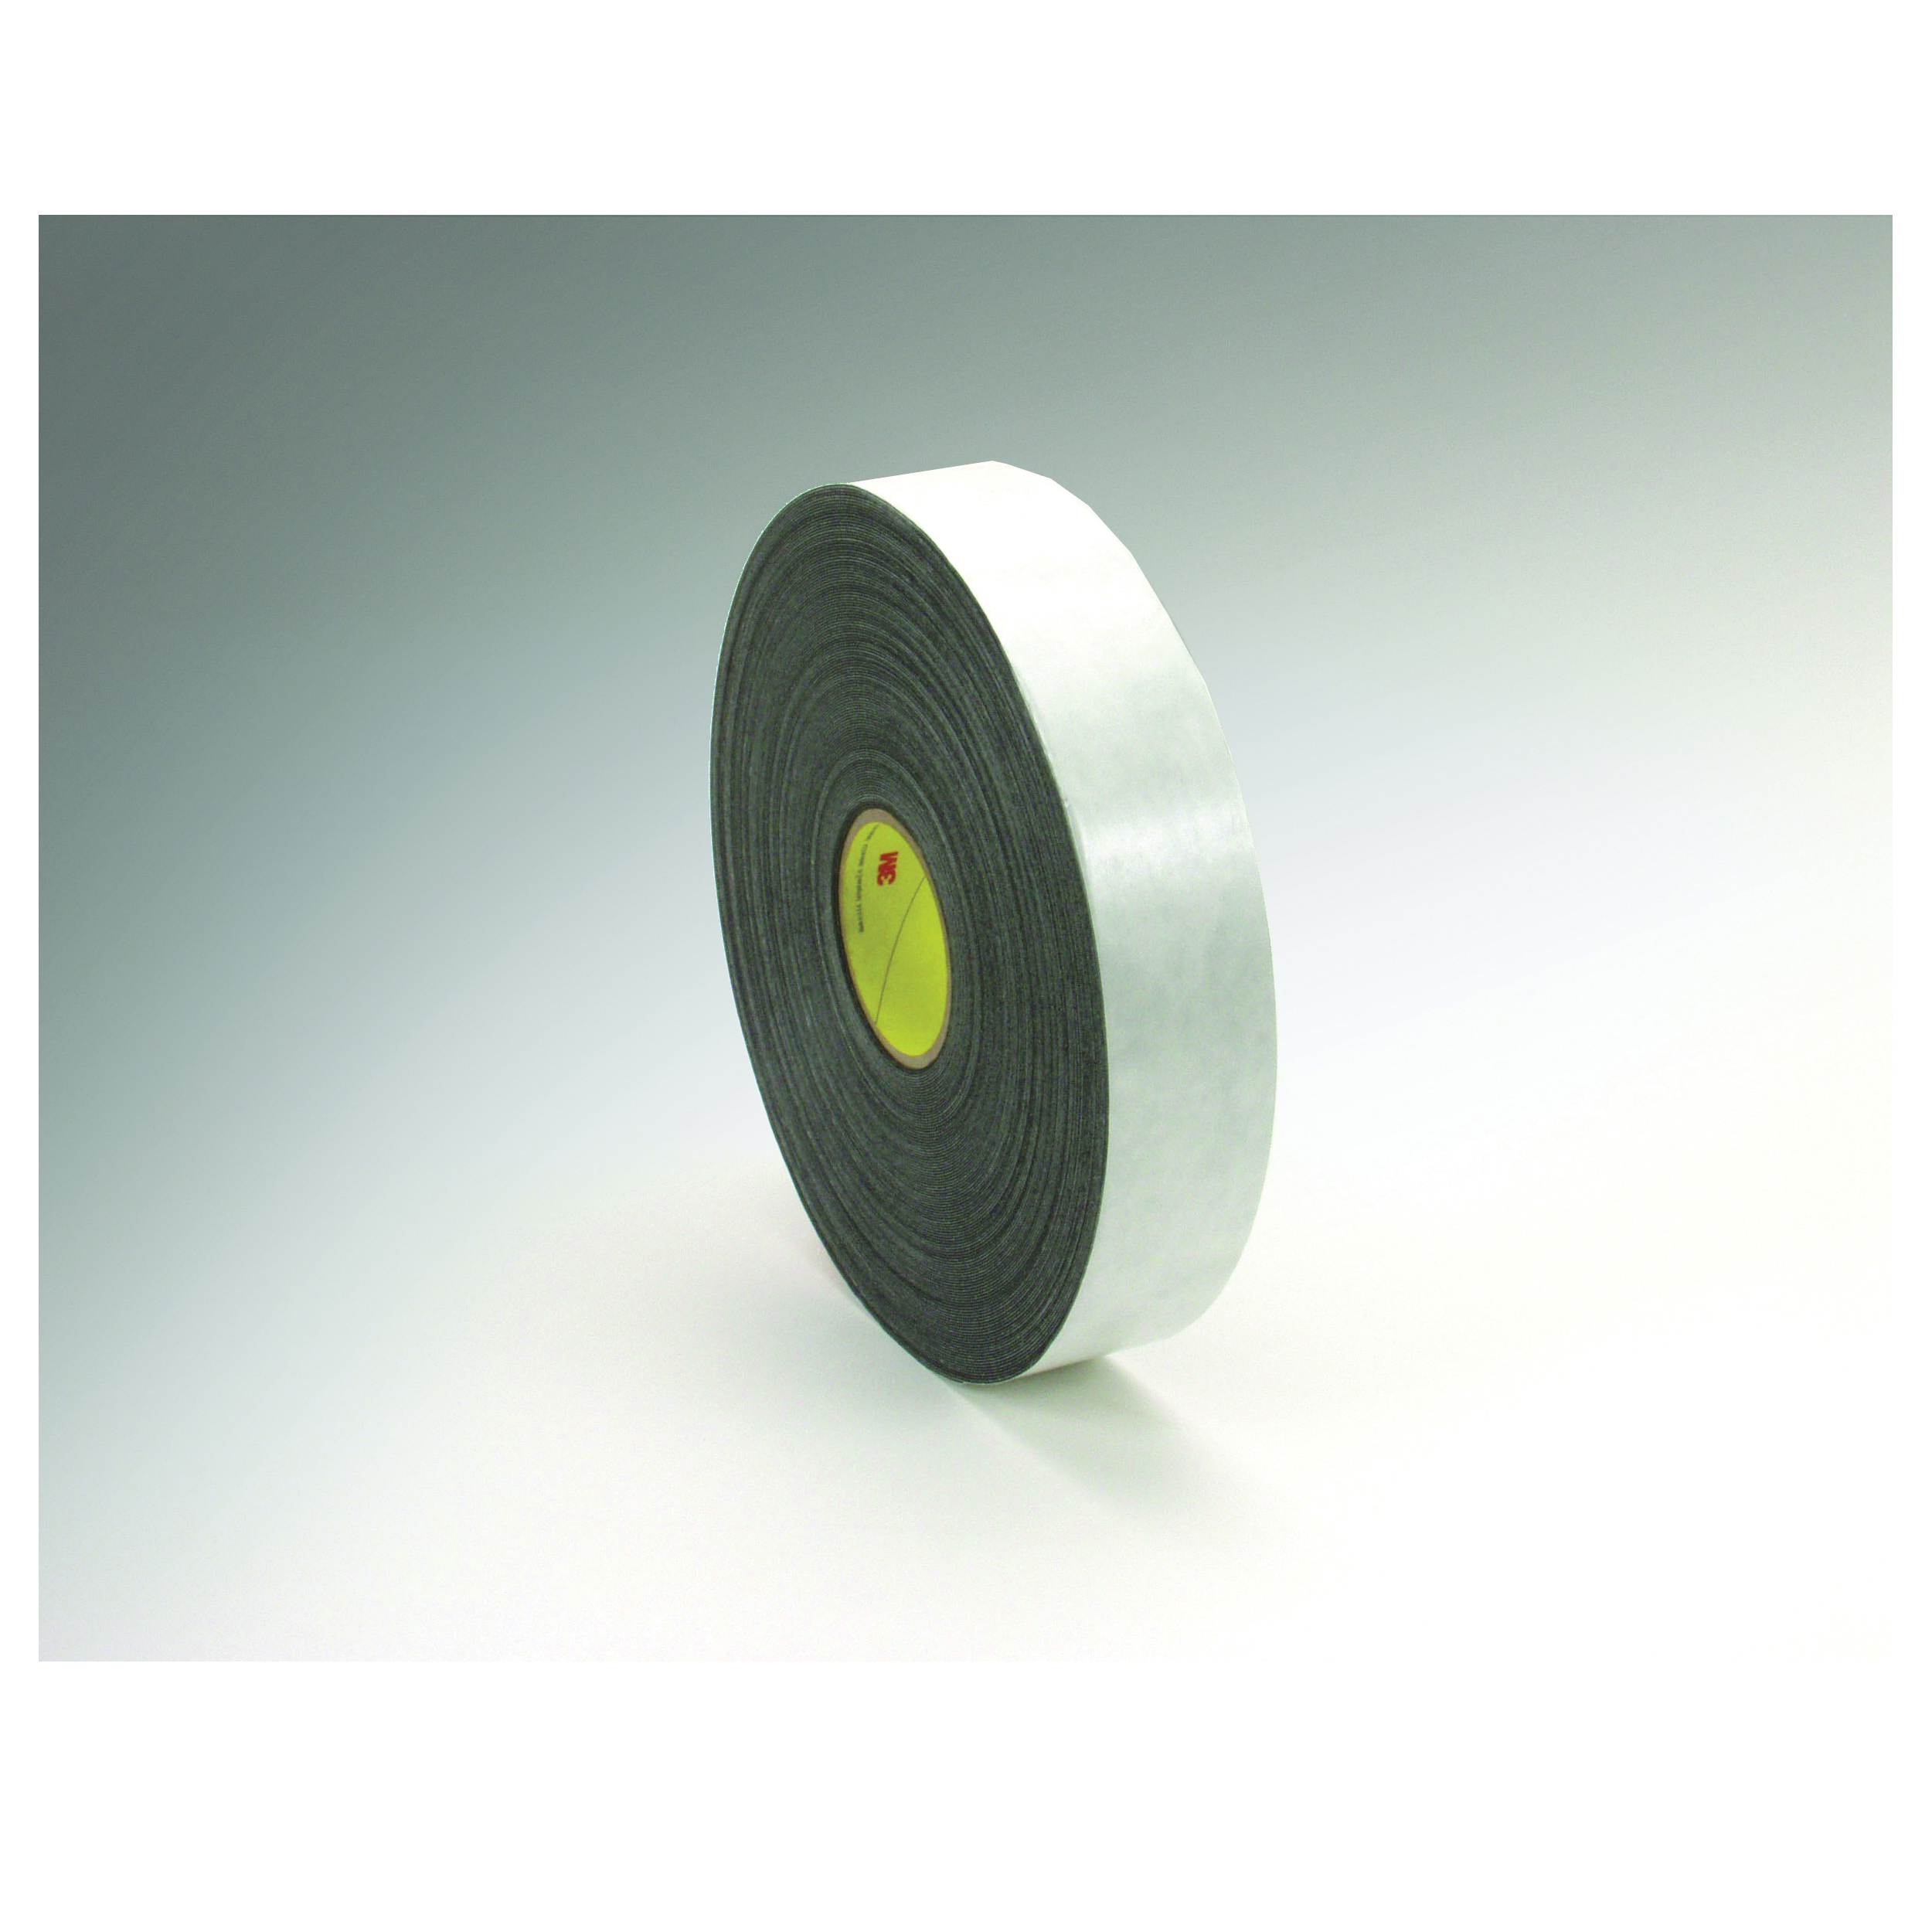 3M™ 021200-30416 Double Coated Tape, 72 yd L x 1/2 in W, 31 mil THK, Rubber Adhesive, Polyethylene Foam Backing, Black